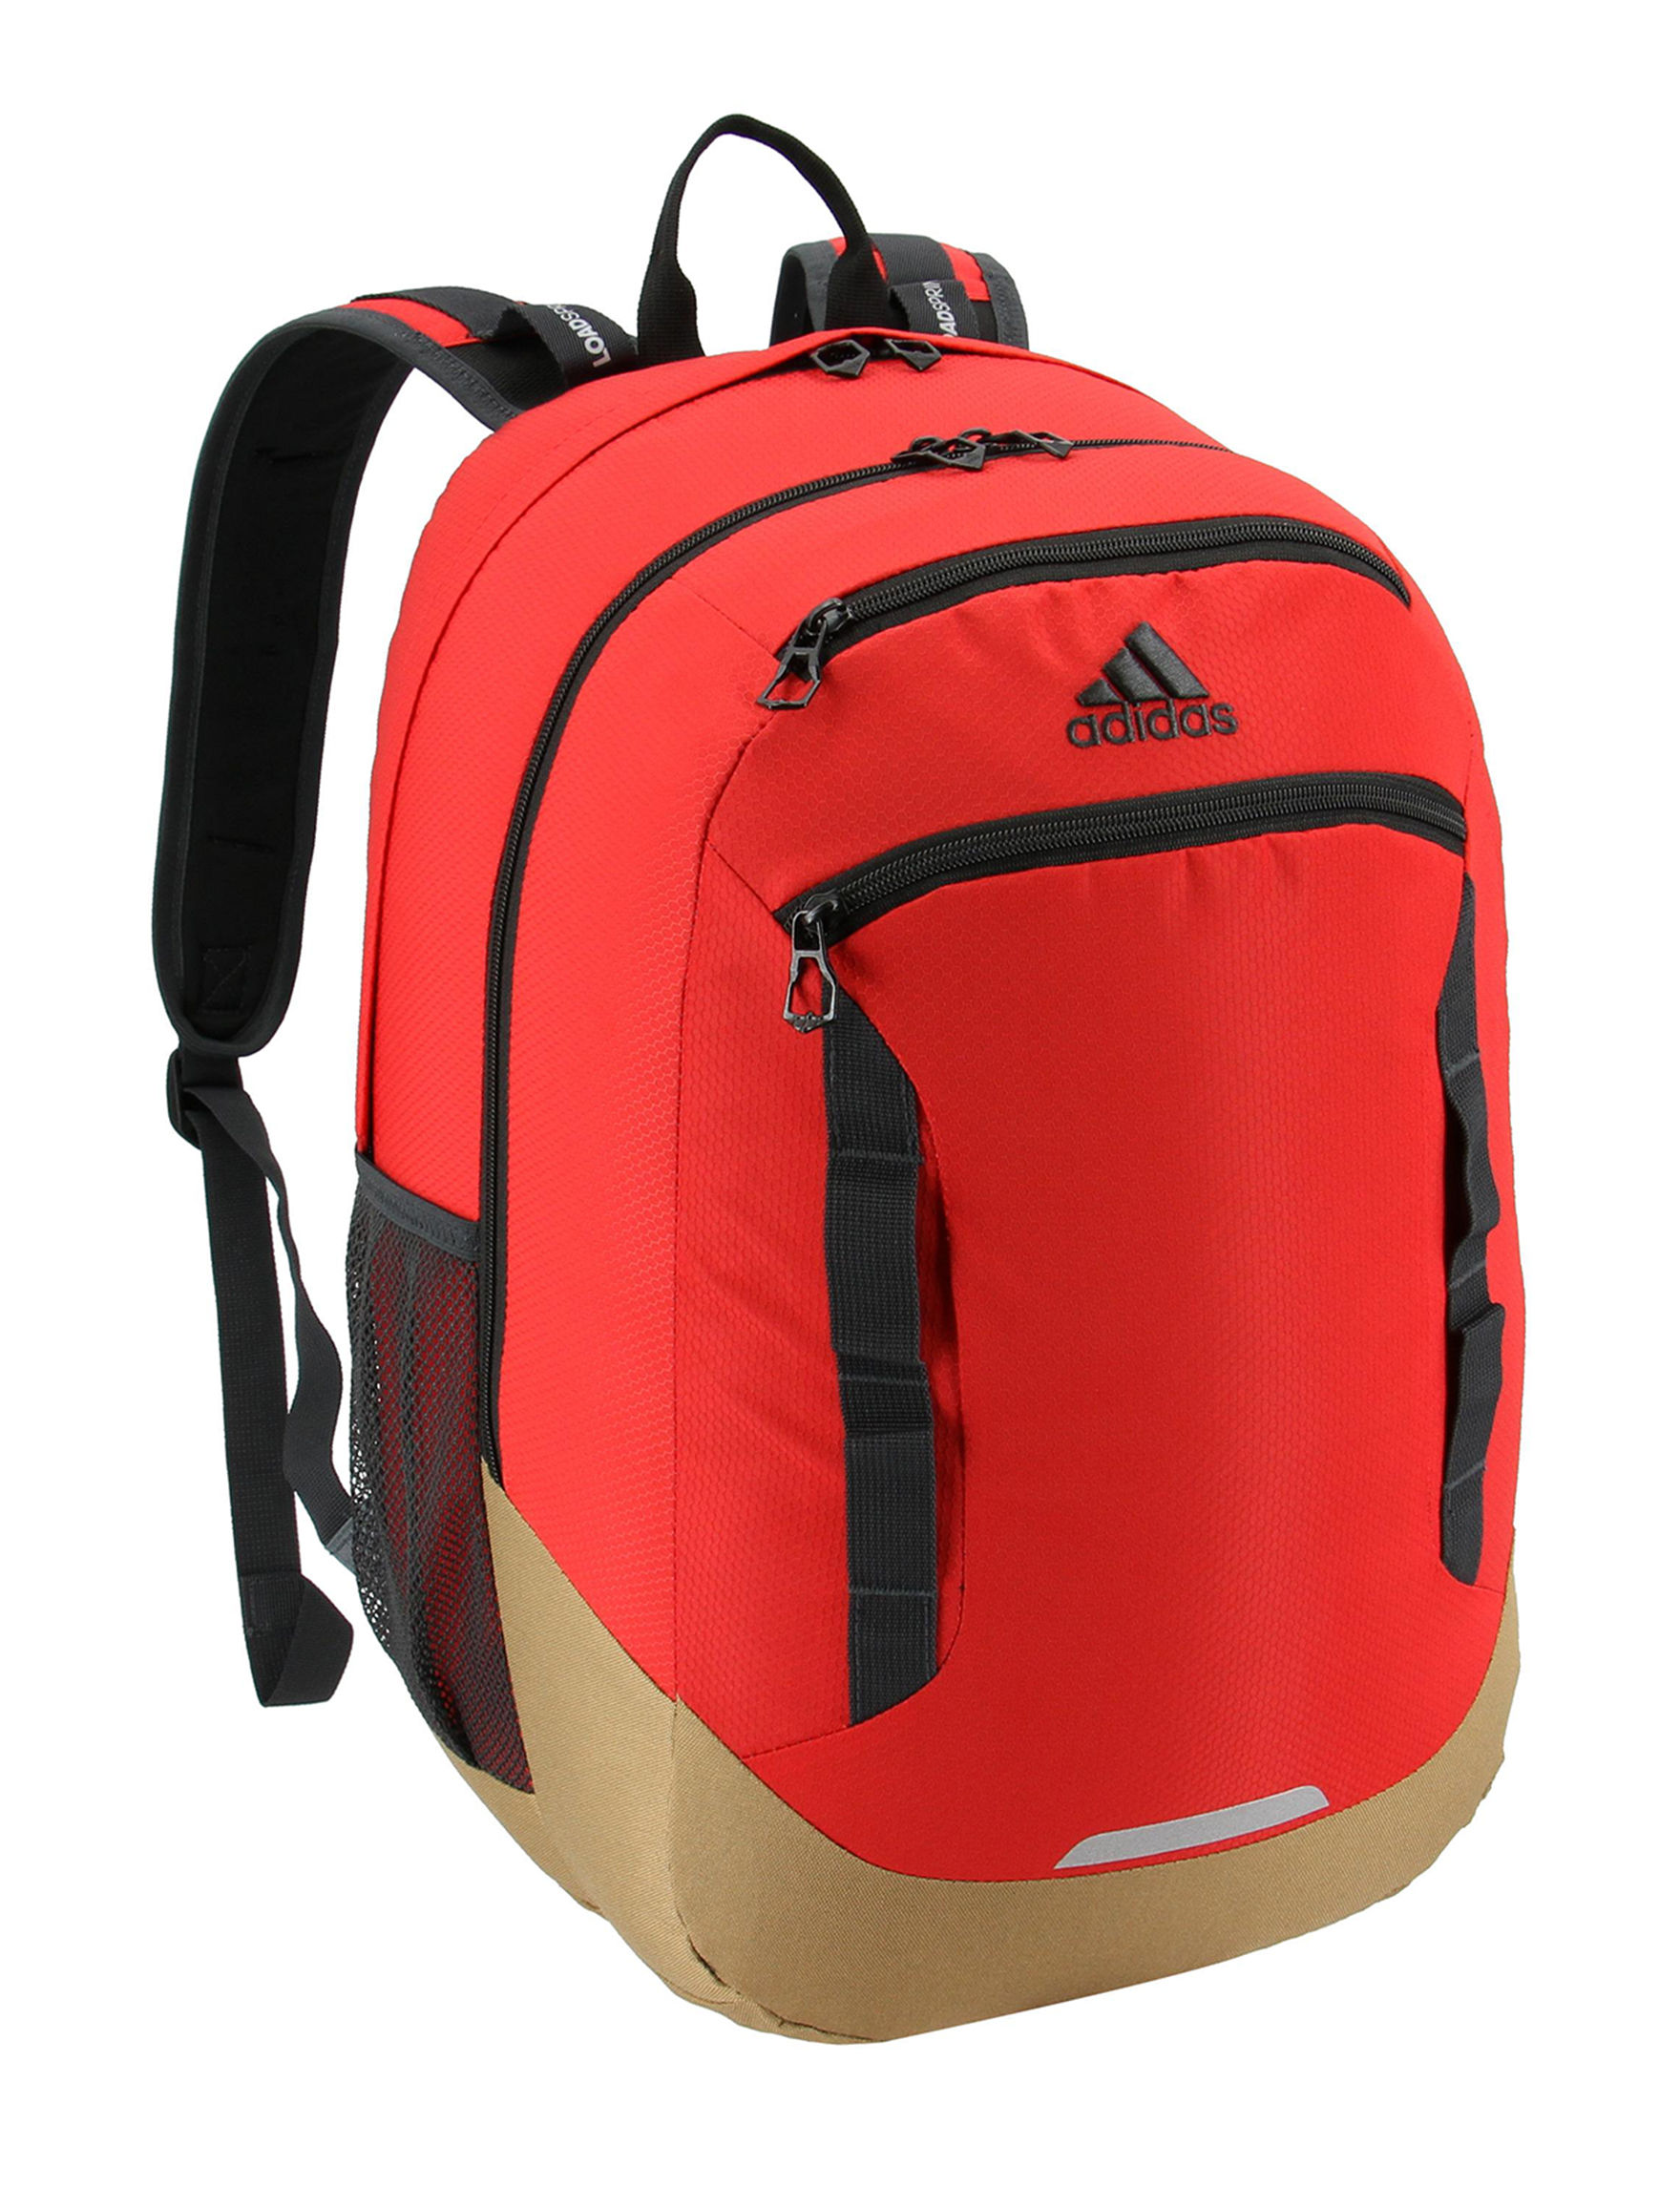 Adidas Red / Khaki Bookbags & Backpacks